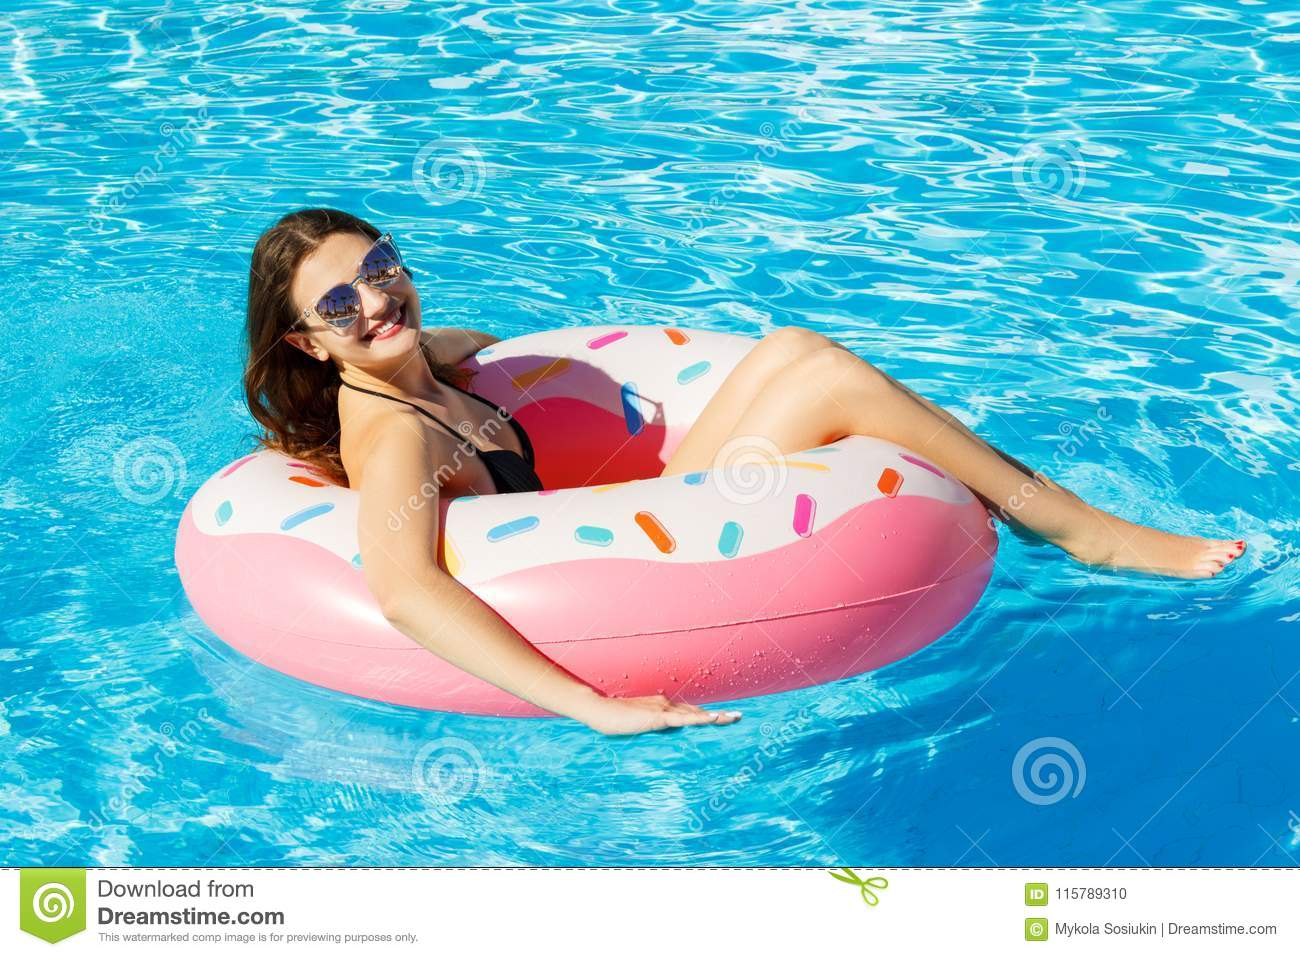 Top view of young female swim with pink circle in pool